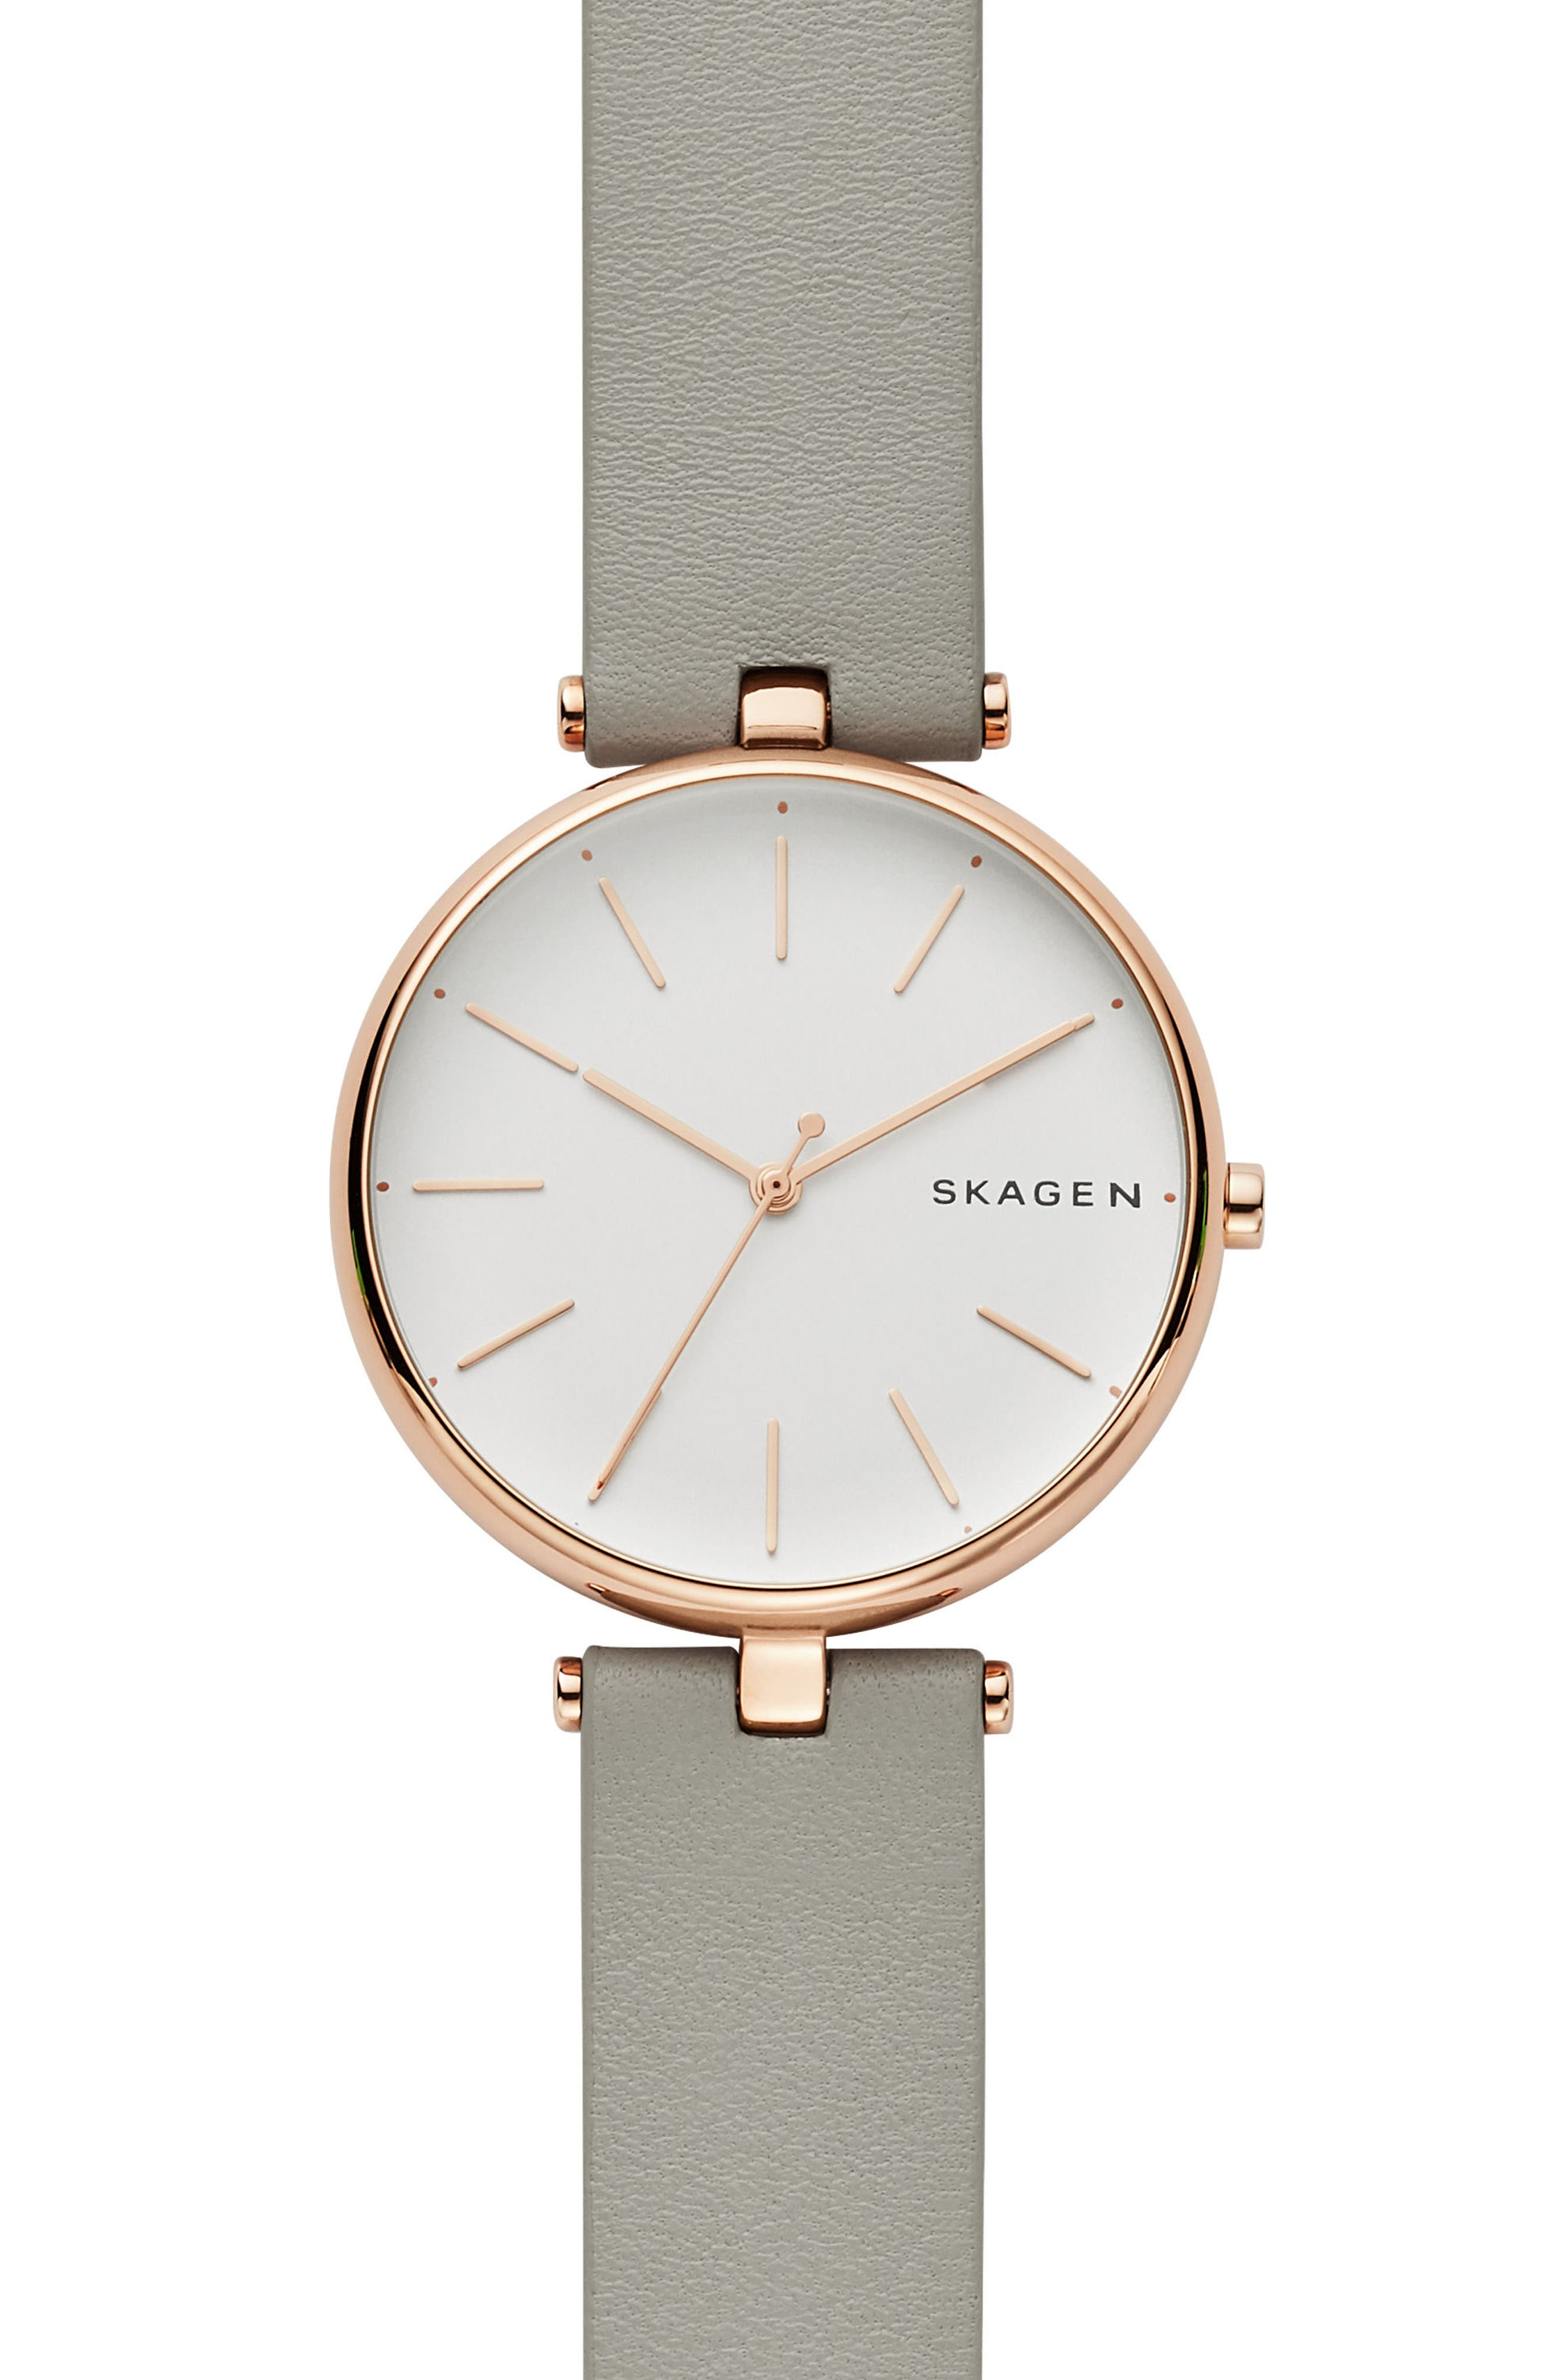 SKAGEN SIGNATUR LEATHER STRAP WATCH, 36MM